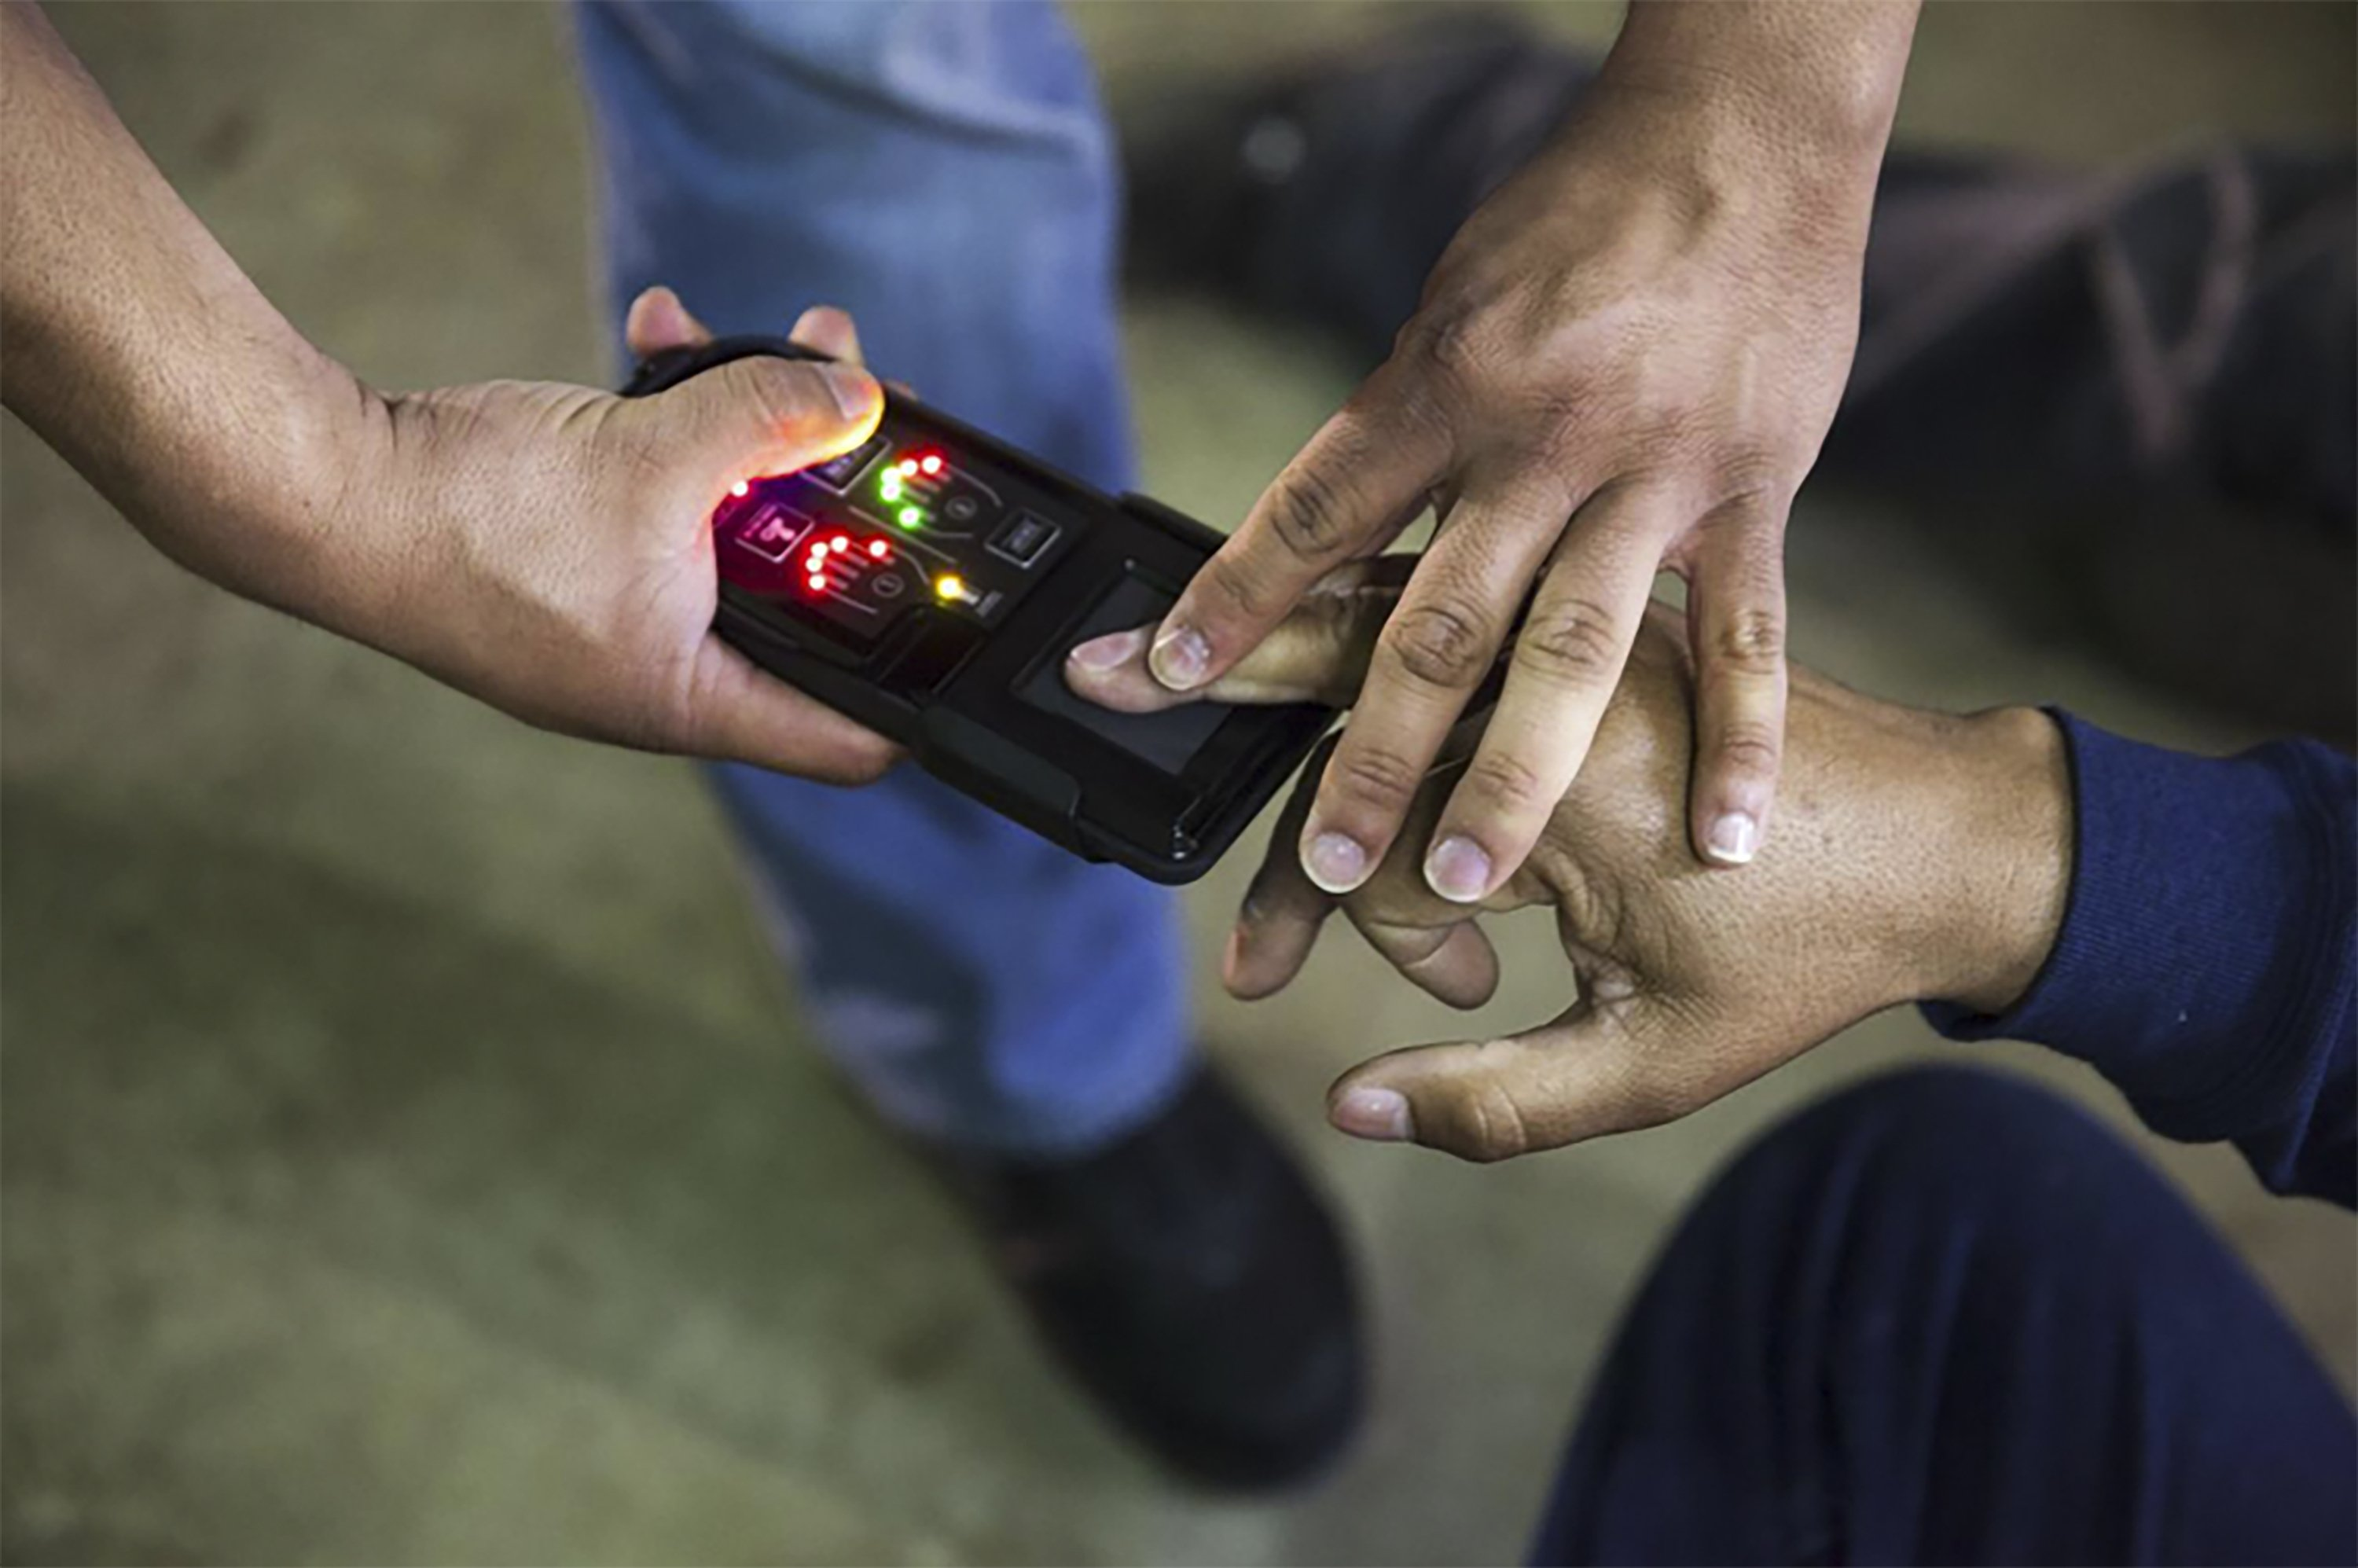 Report: Mobile fingerprinting a core tool in US deportations